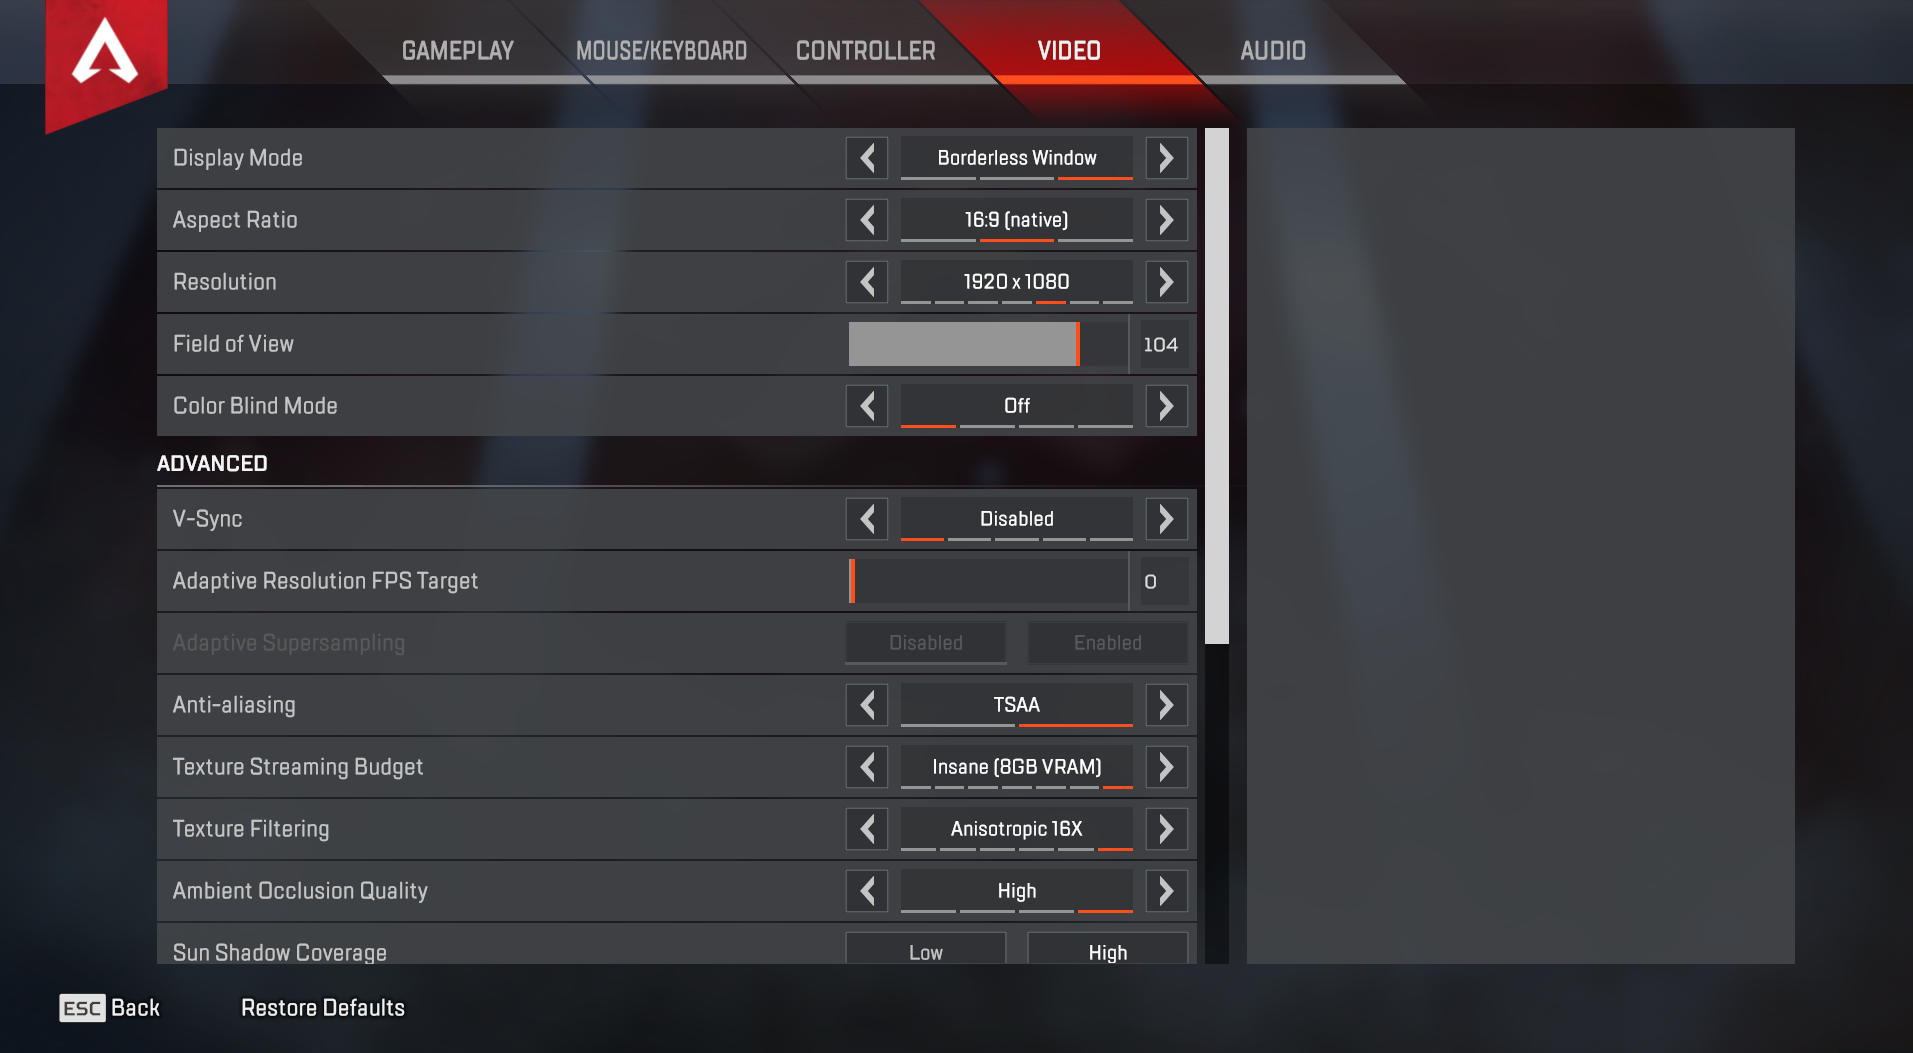 Best Apex Legends settings - How to get the best performance